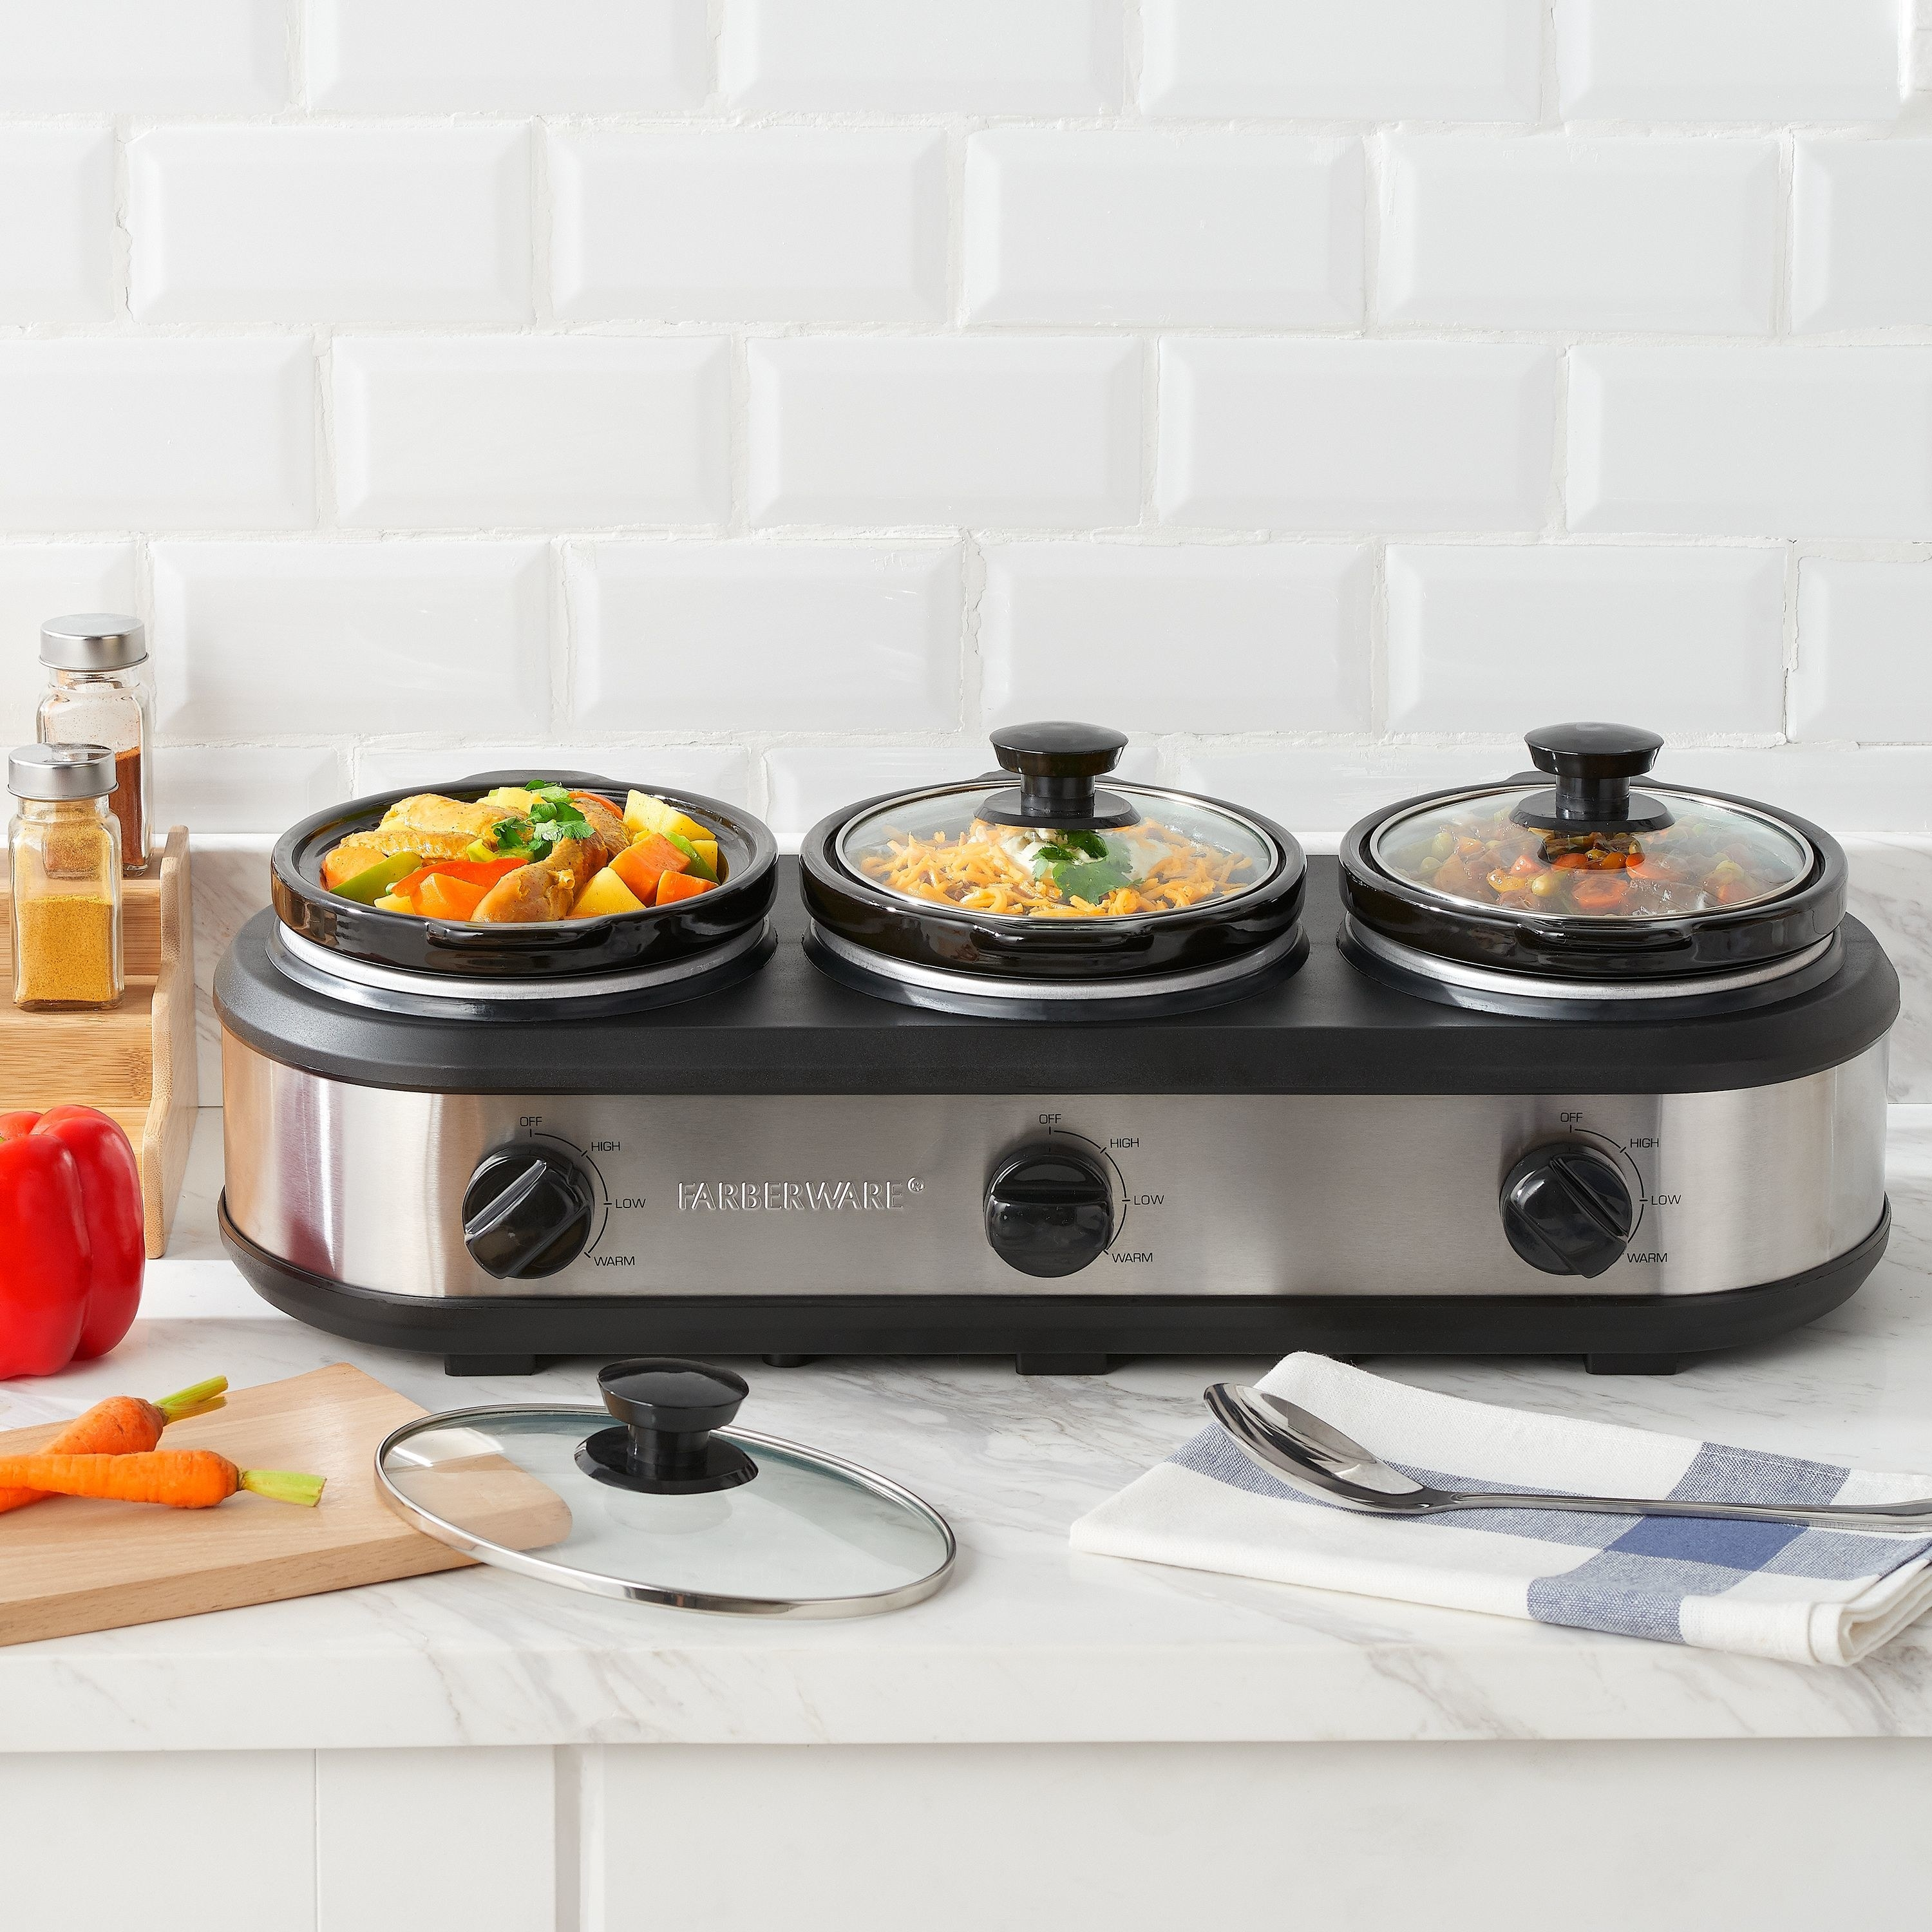 a triple slow cooker on a kitchen counter